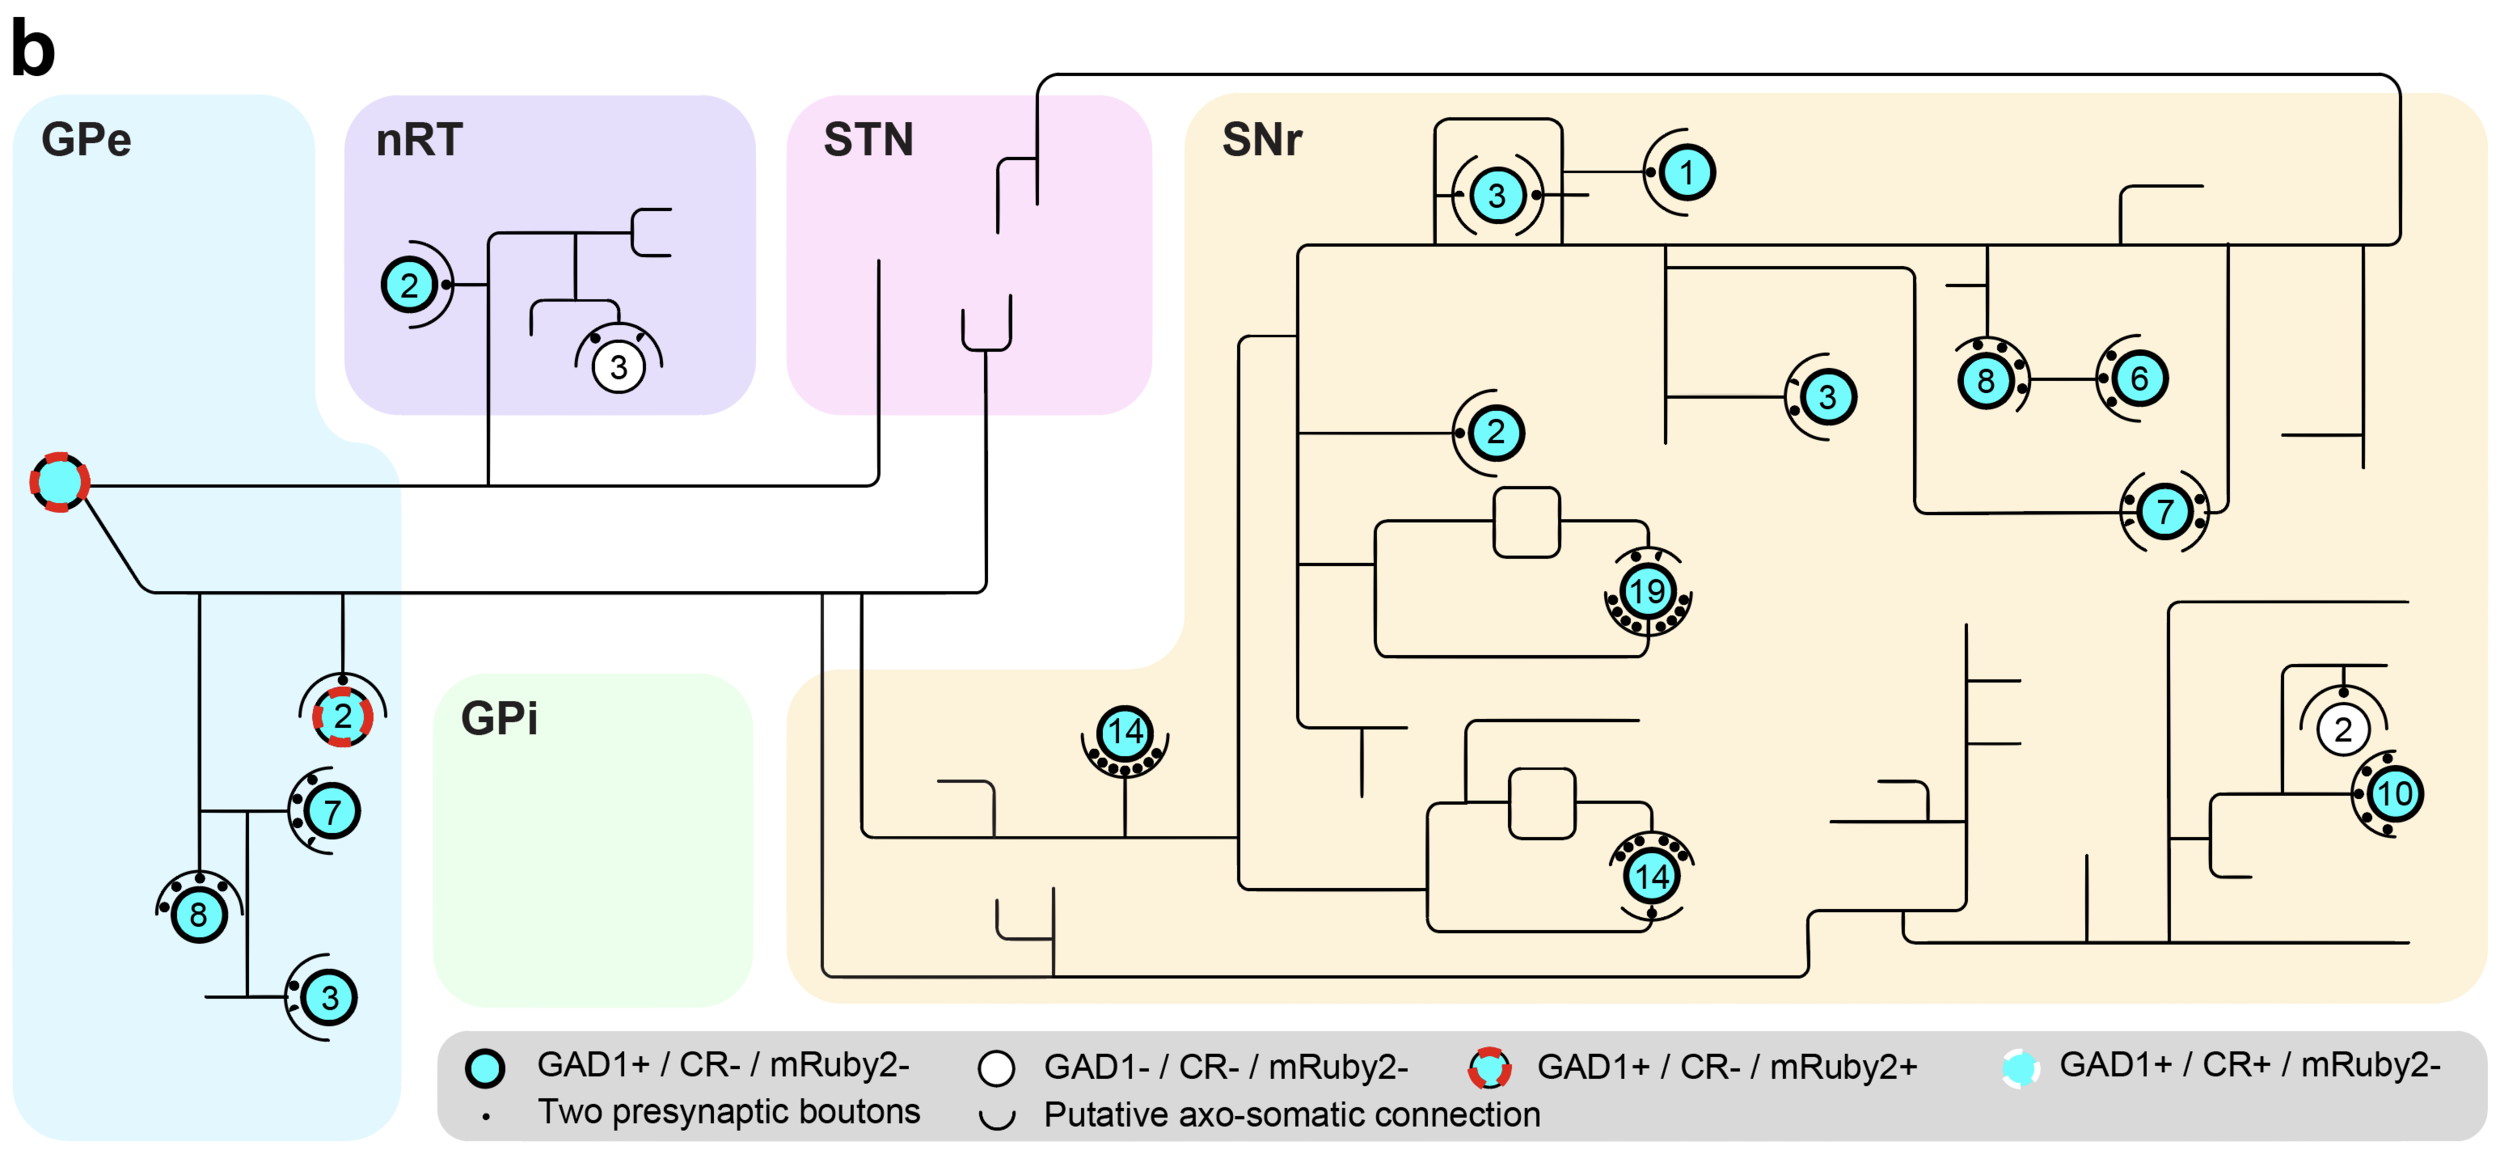 Figure 1.  SHIELD enables integrated circuit reconstruction at single cell resolution. (a) 3D rendering of virus-labeled PV+ neurons in GPe with reconstructed axon trace of one of the neuron. Syp-EGFP, Synaptophysin-EGFP. Scale bar : 1 mm. (b) An axogram of the traced neuron and its putative downstream targets. The number of putative axosomatic boutons is marked inside each circle.